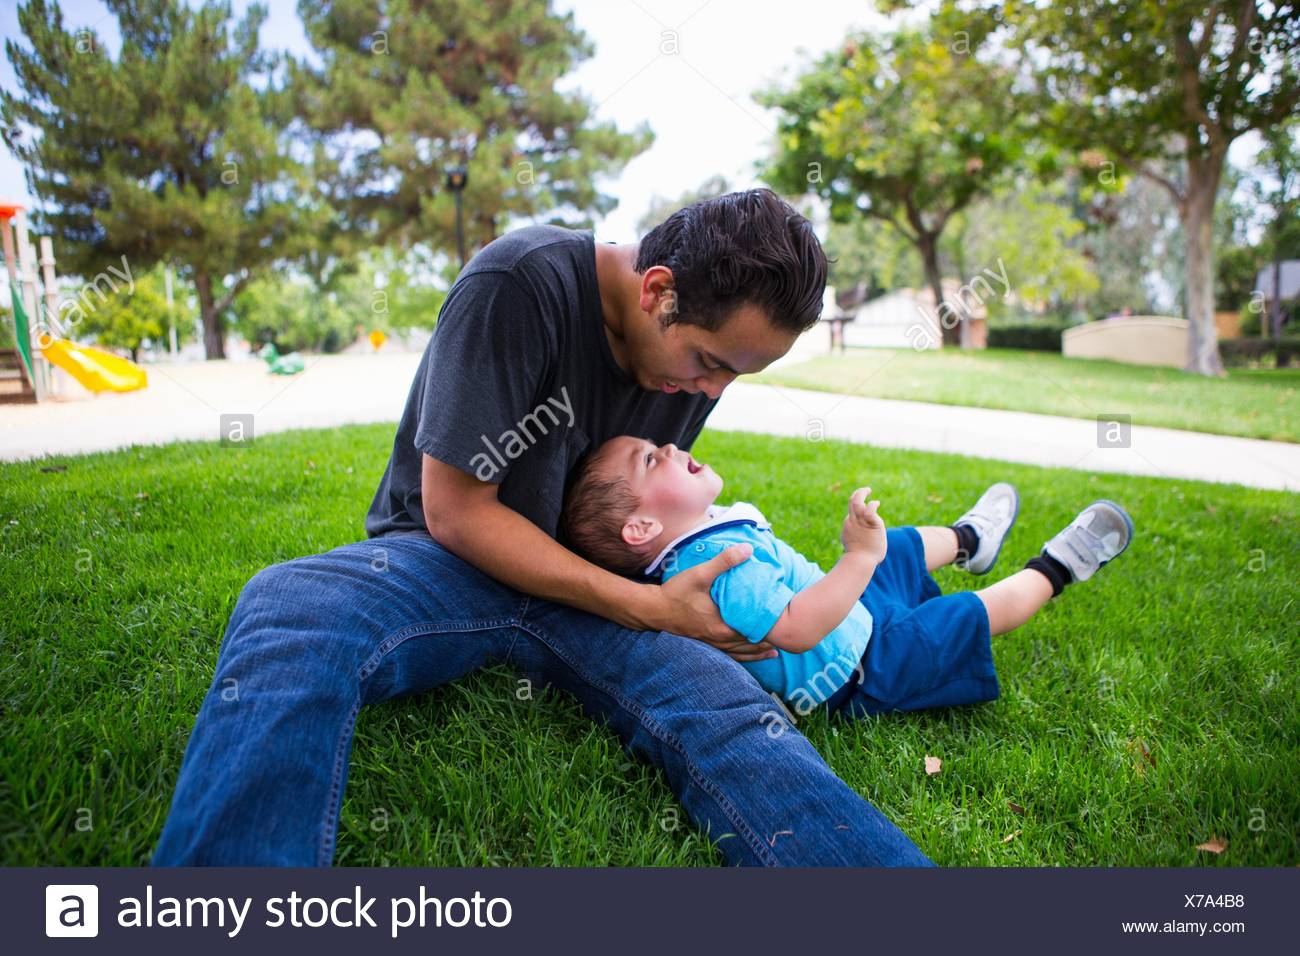 Male toddler playing with older adult brother in park - Stock Image